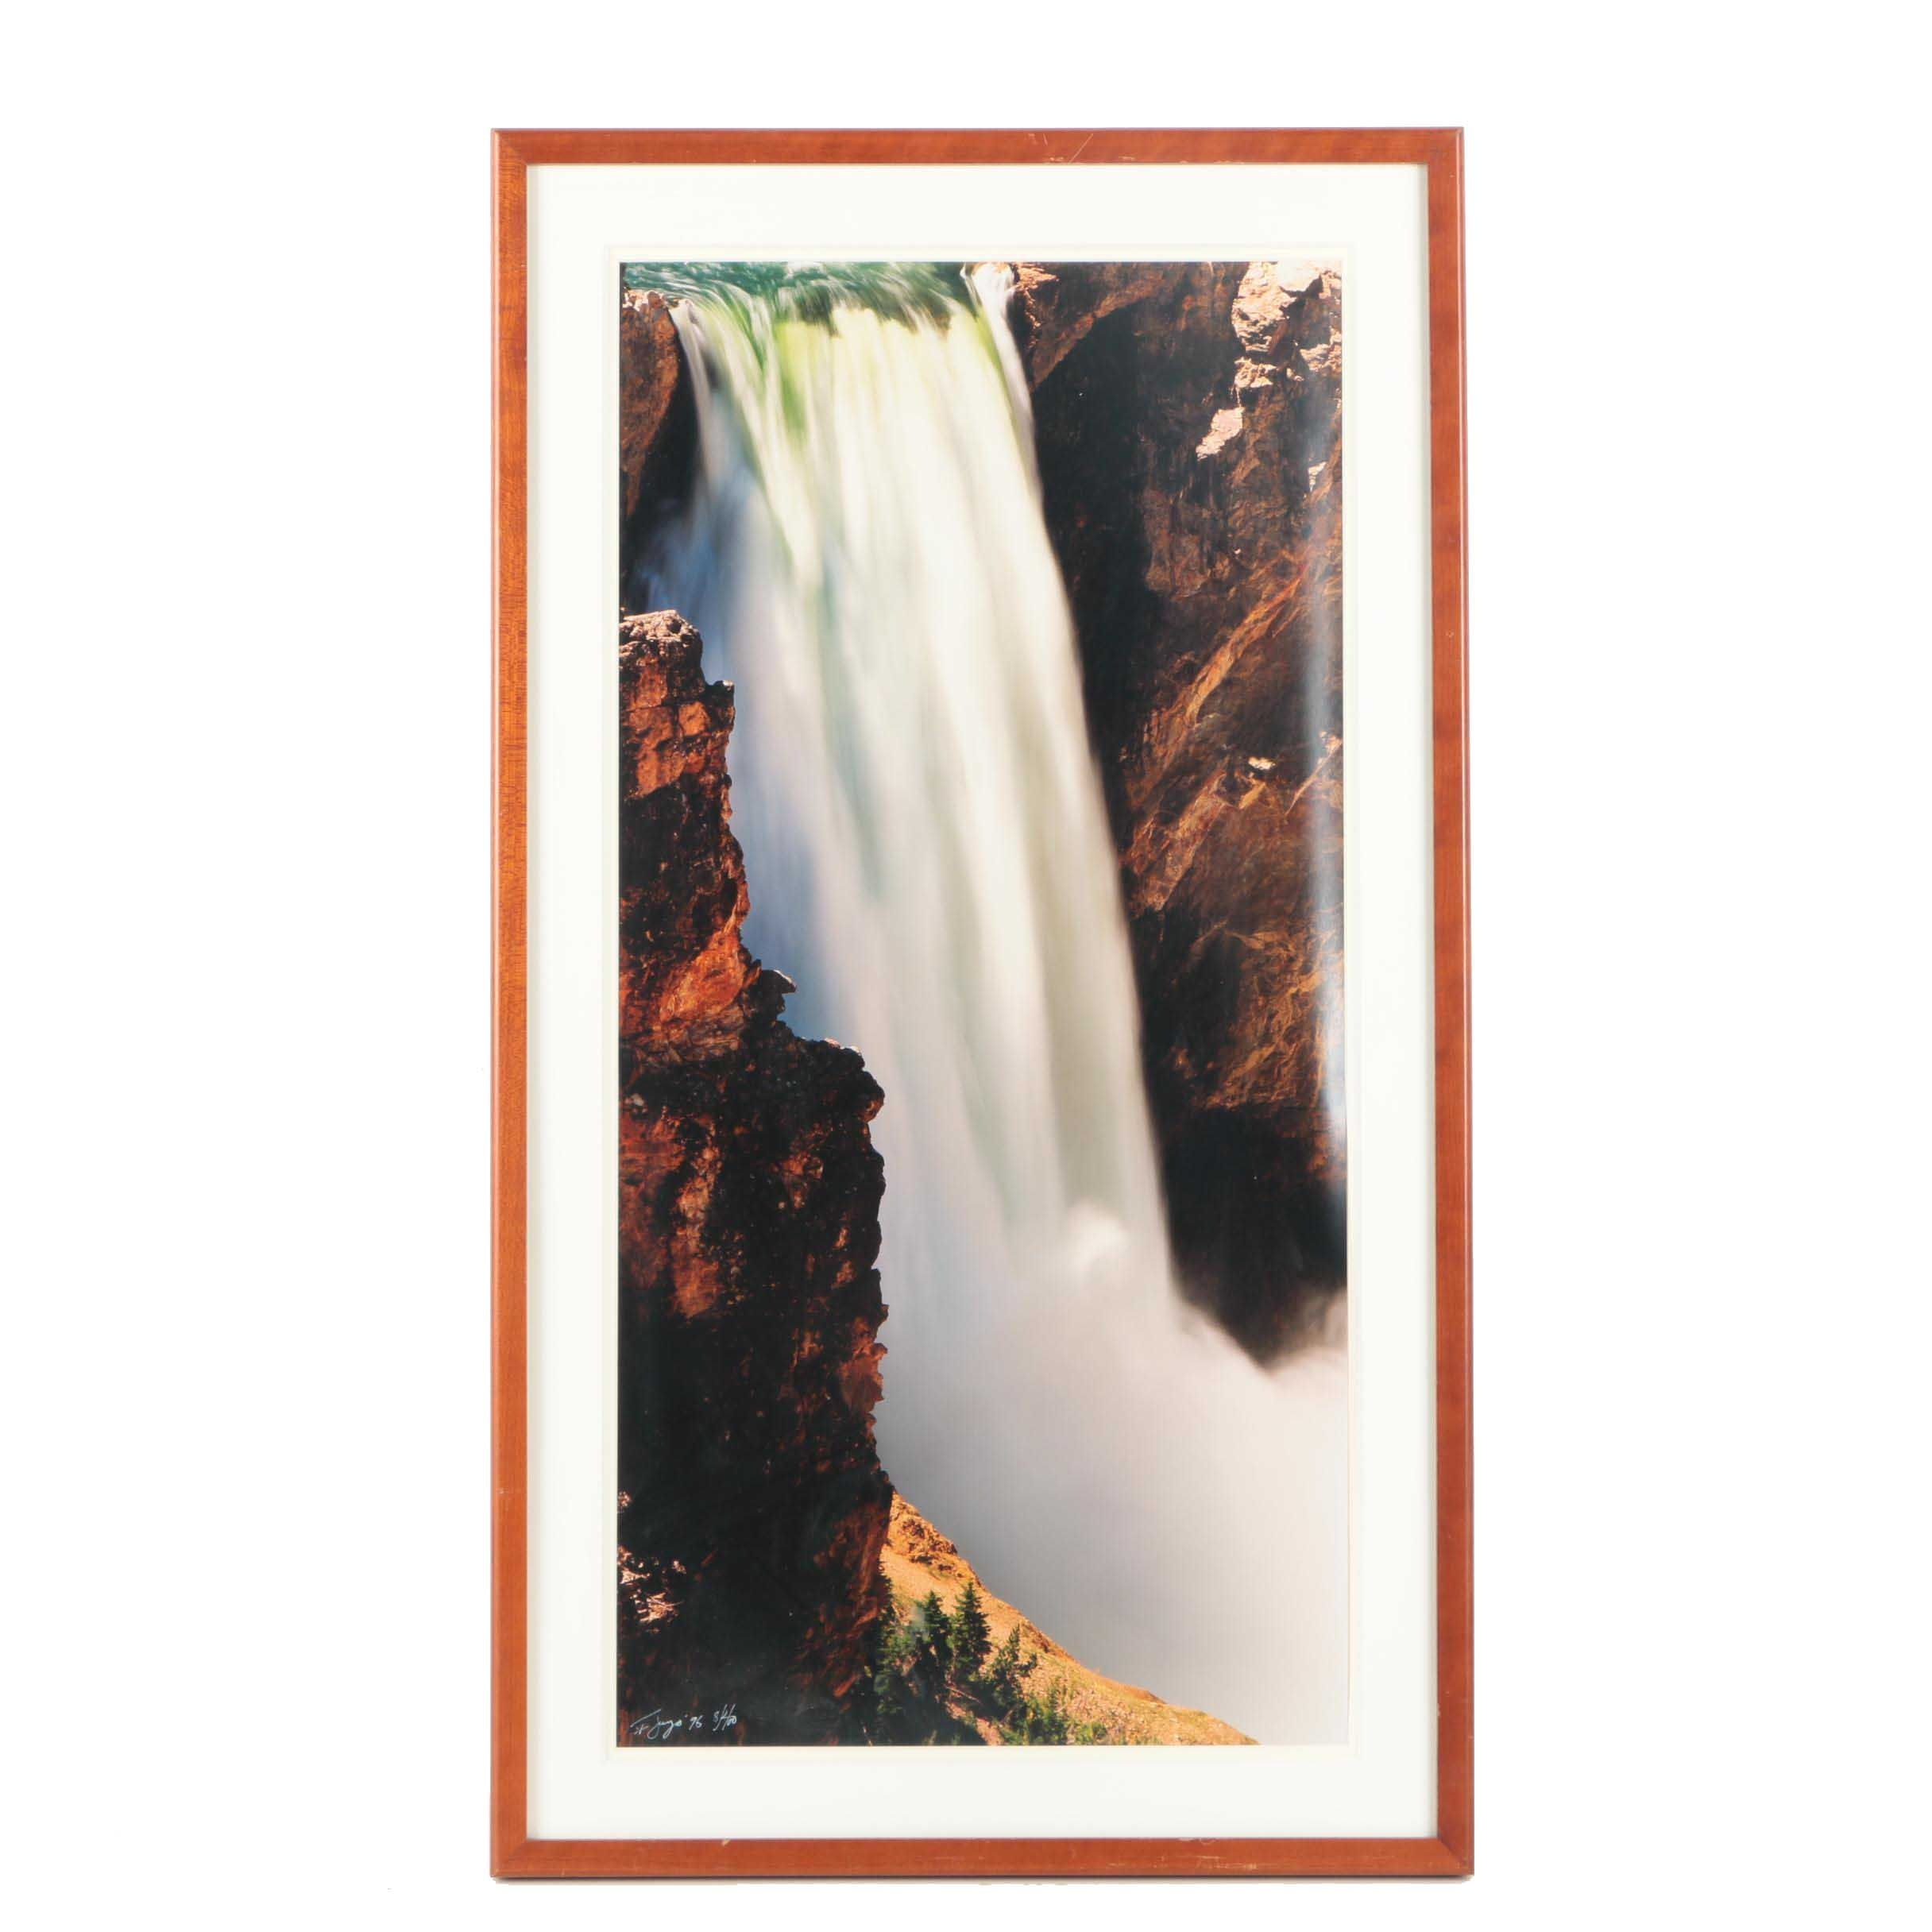 Limited Edition Photograph of Waterfall